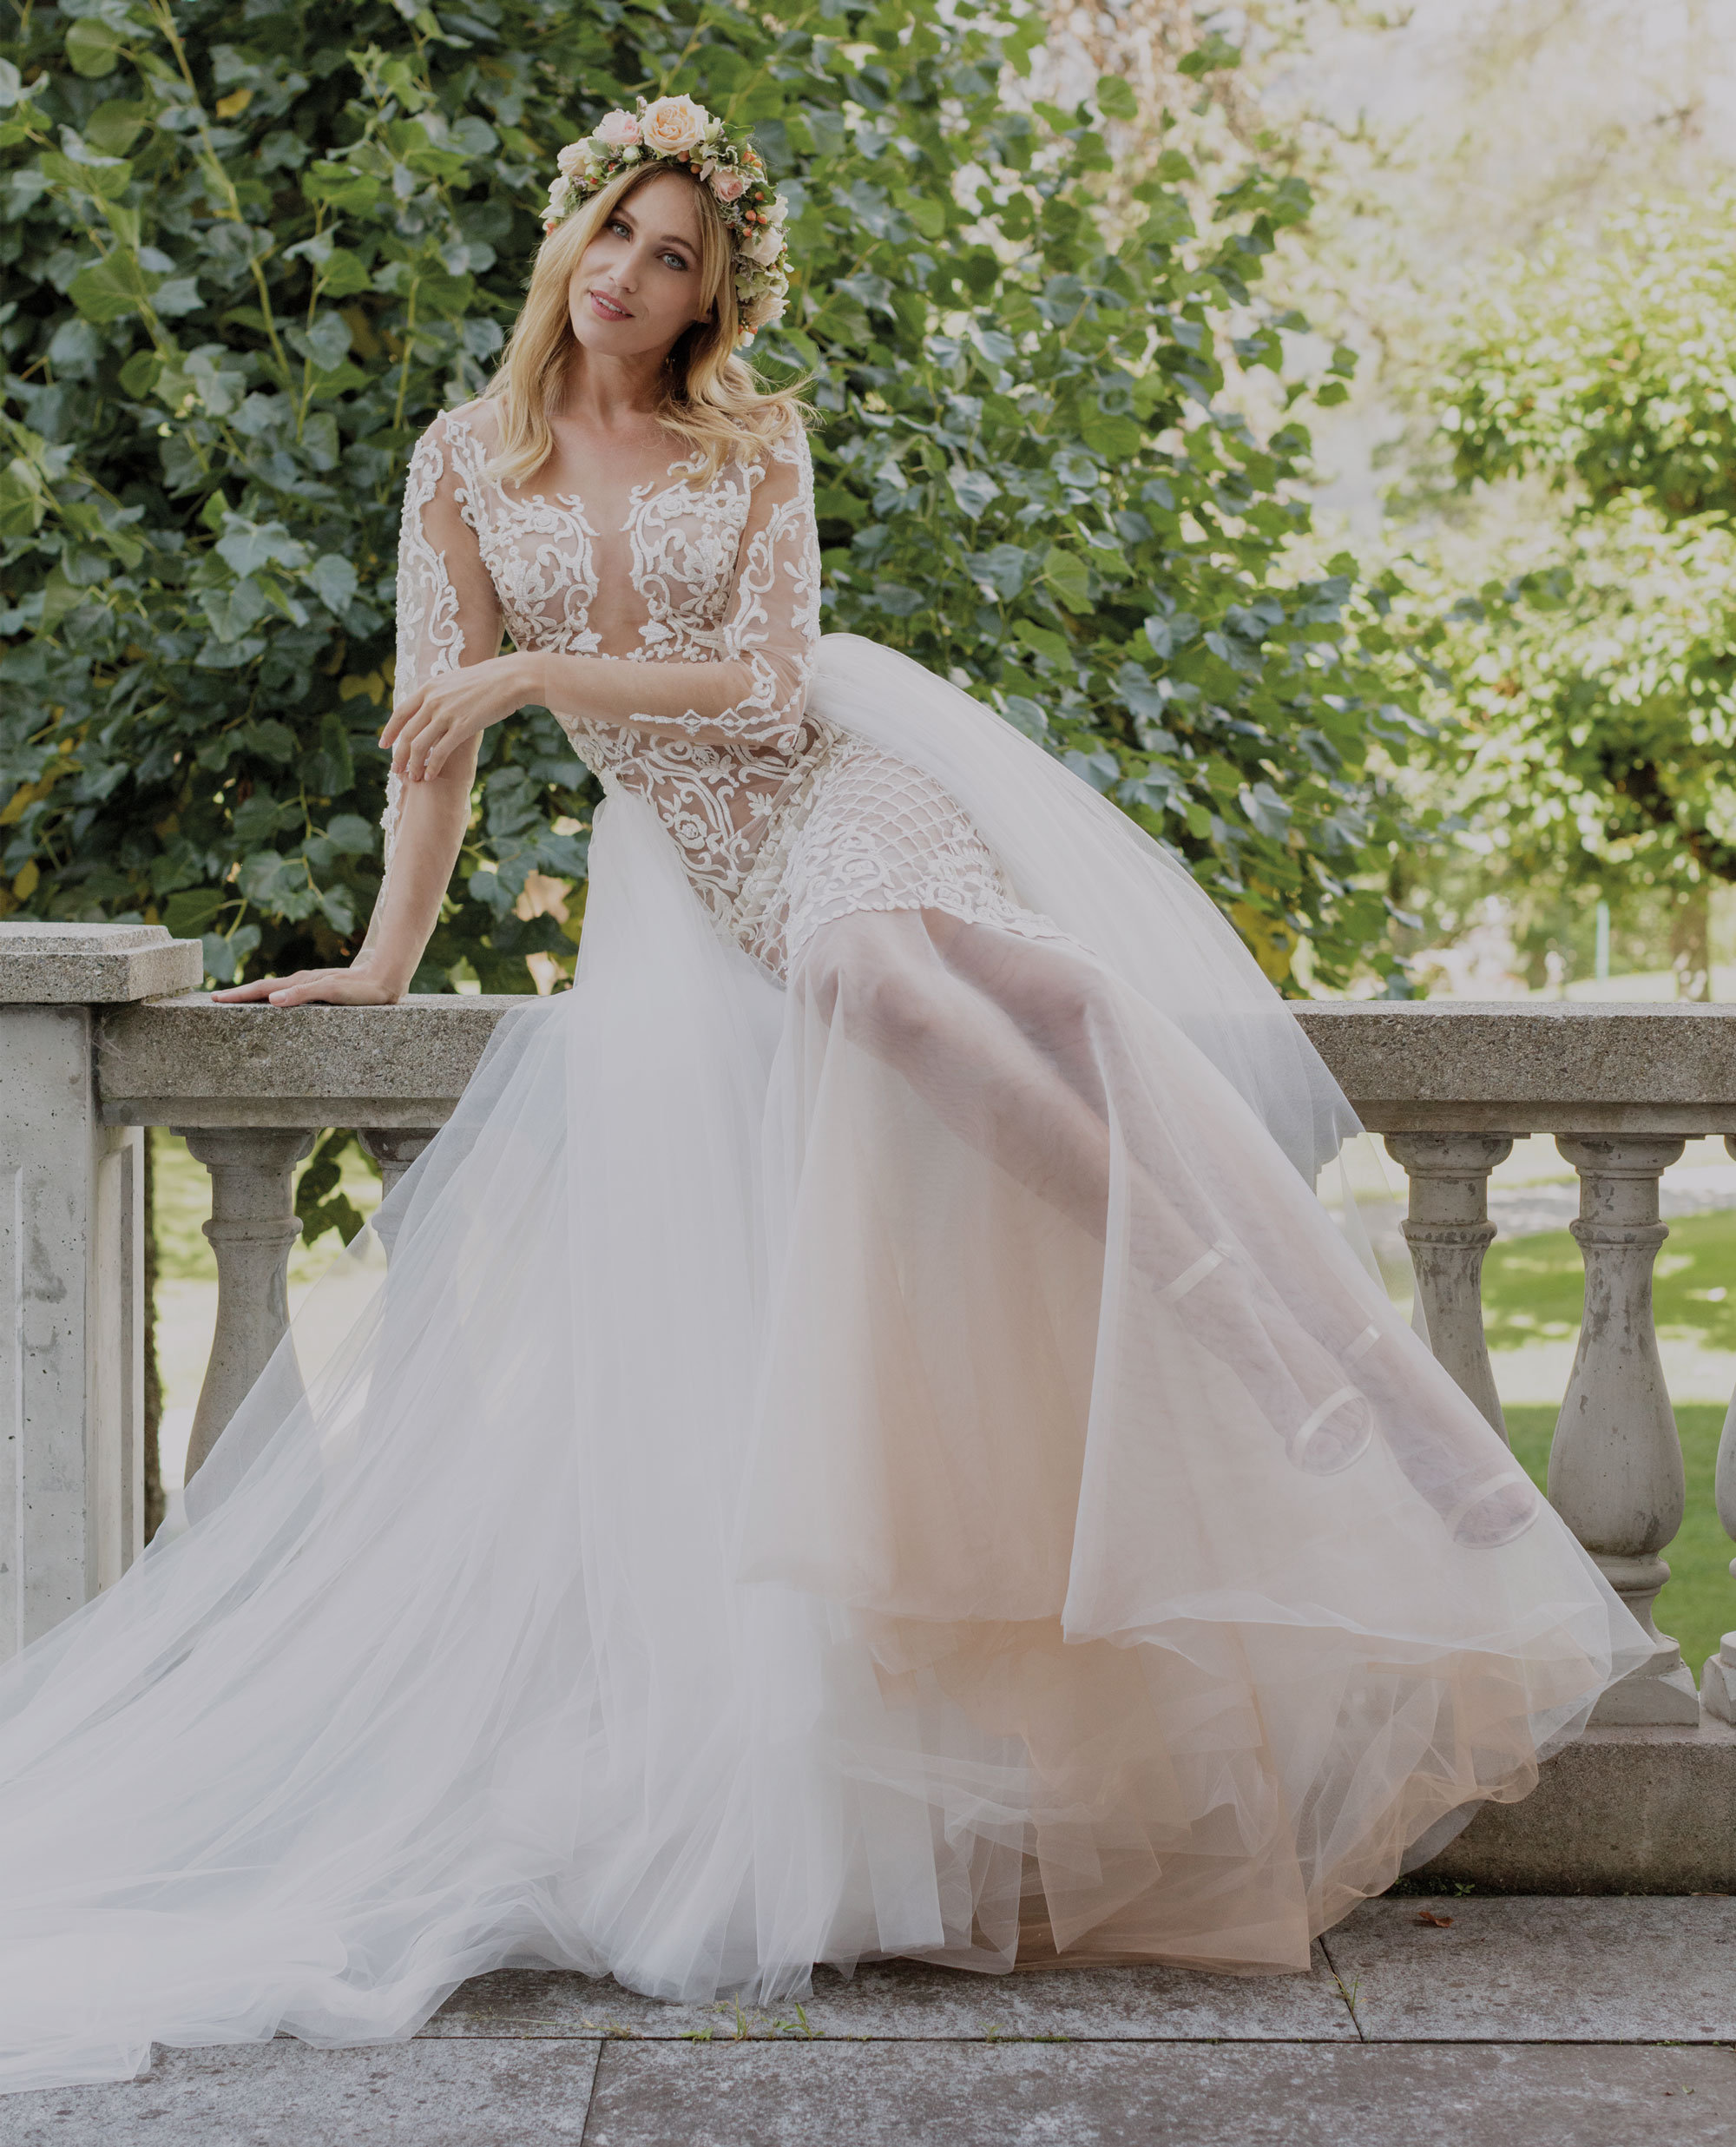 111047fabd2f Mery's Couture - bridal wear, wedding dresses, evening wear / English